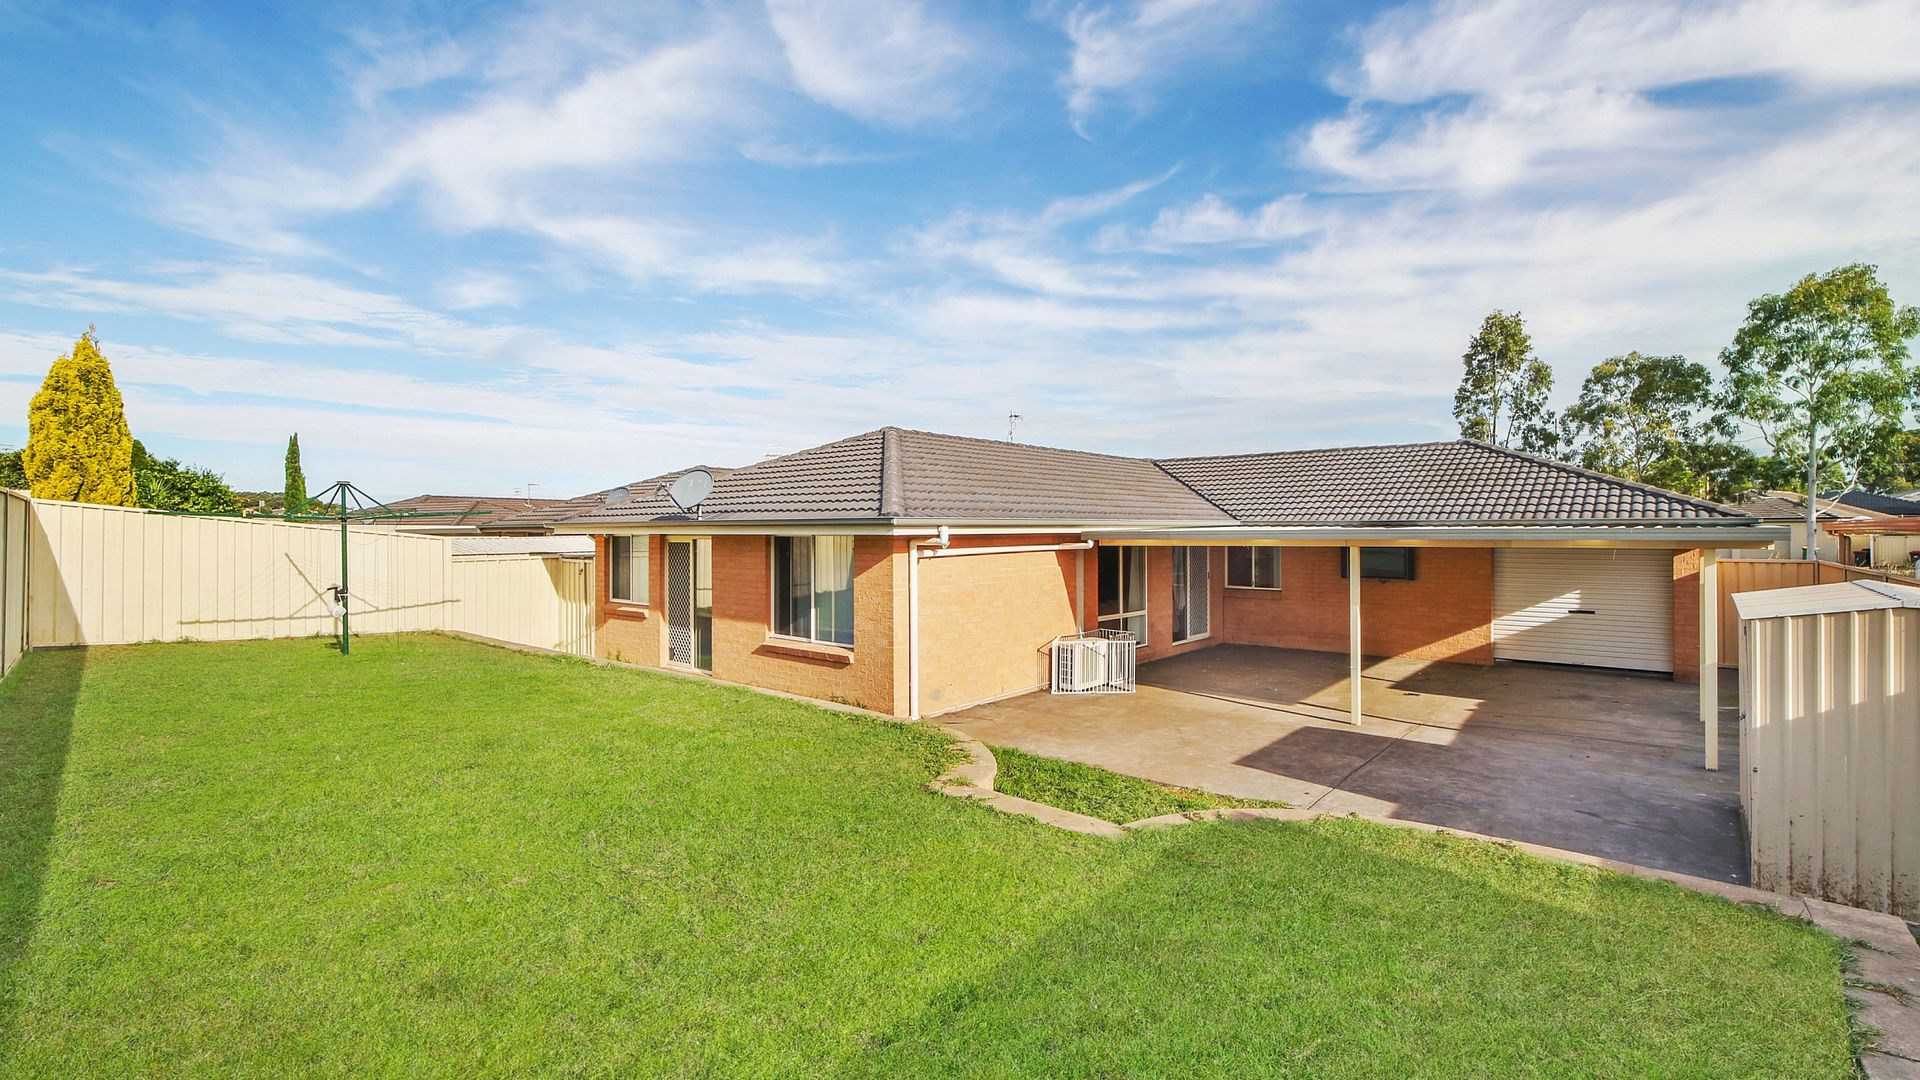 6 Viewmont Way, Woongarrah NSW 2259, Image 6